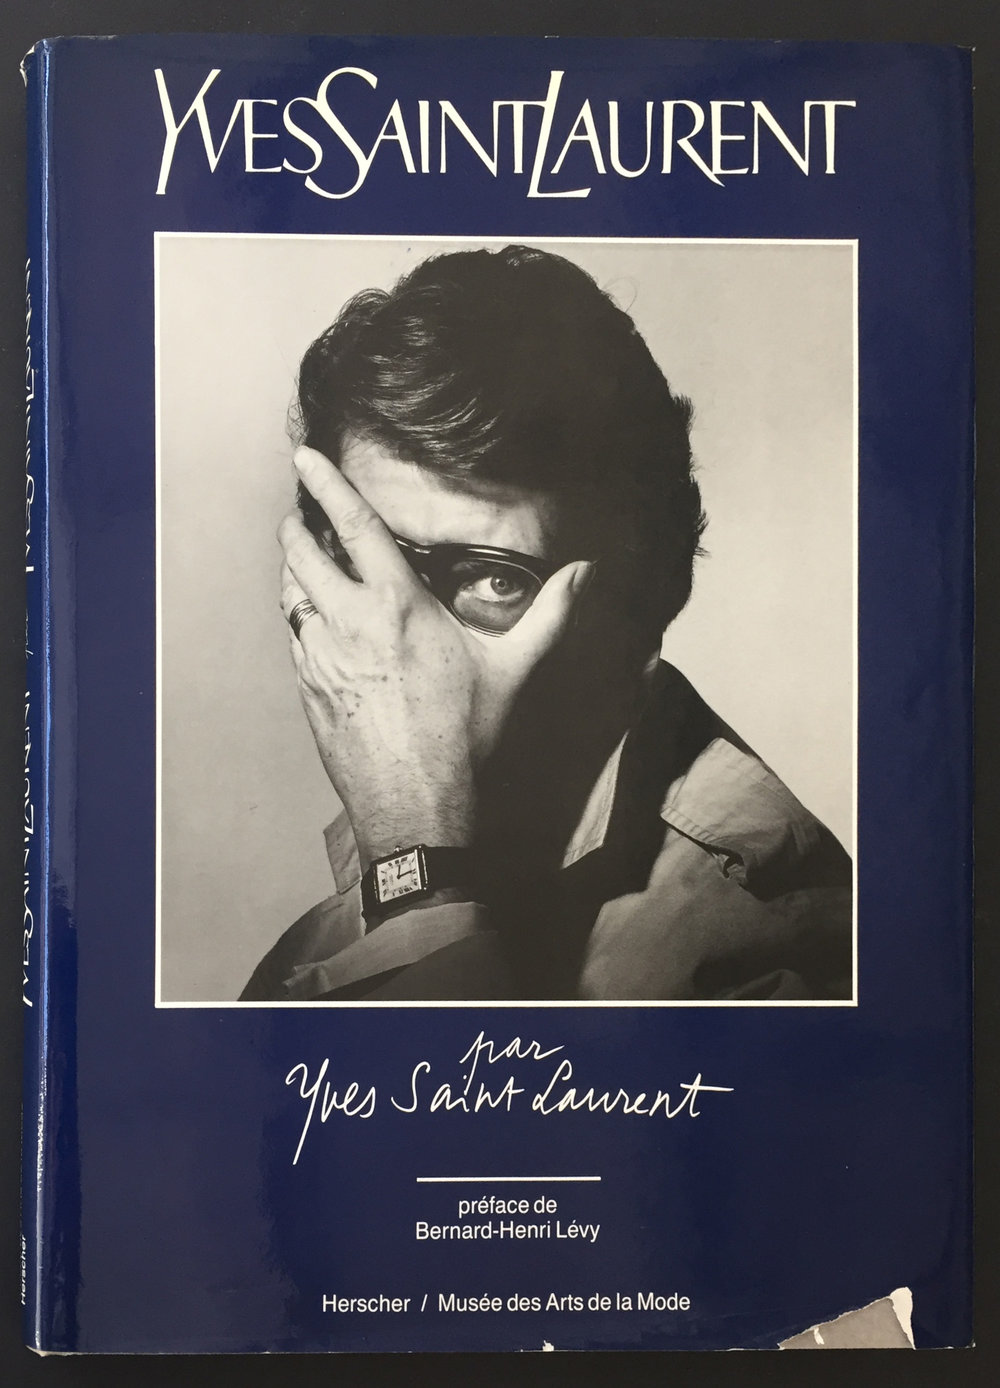 Yves Saint Laurent par Yves Saint Laurent. Preface de Bernard-Henri Levy - Inscribed with an Original Drawing by YSL